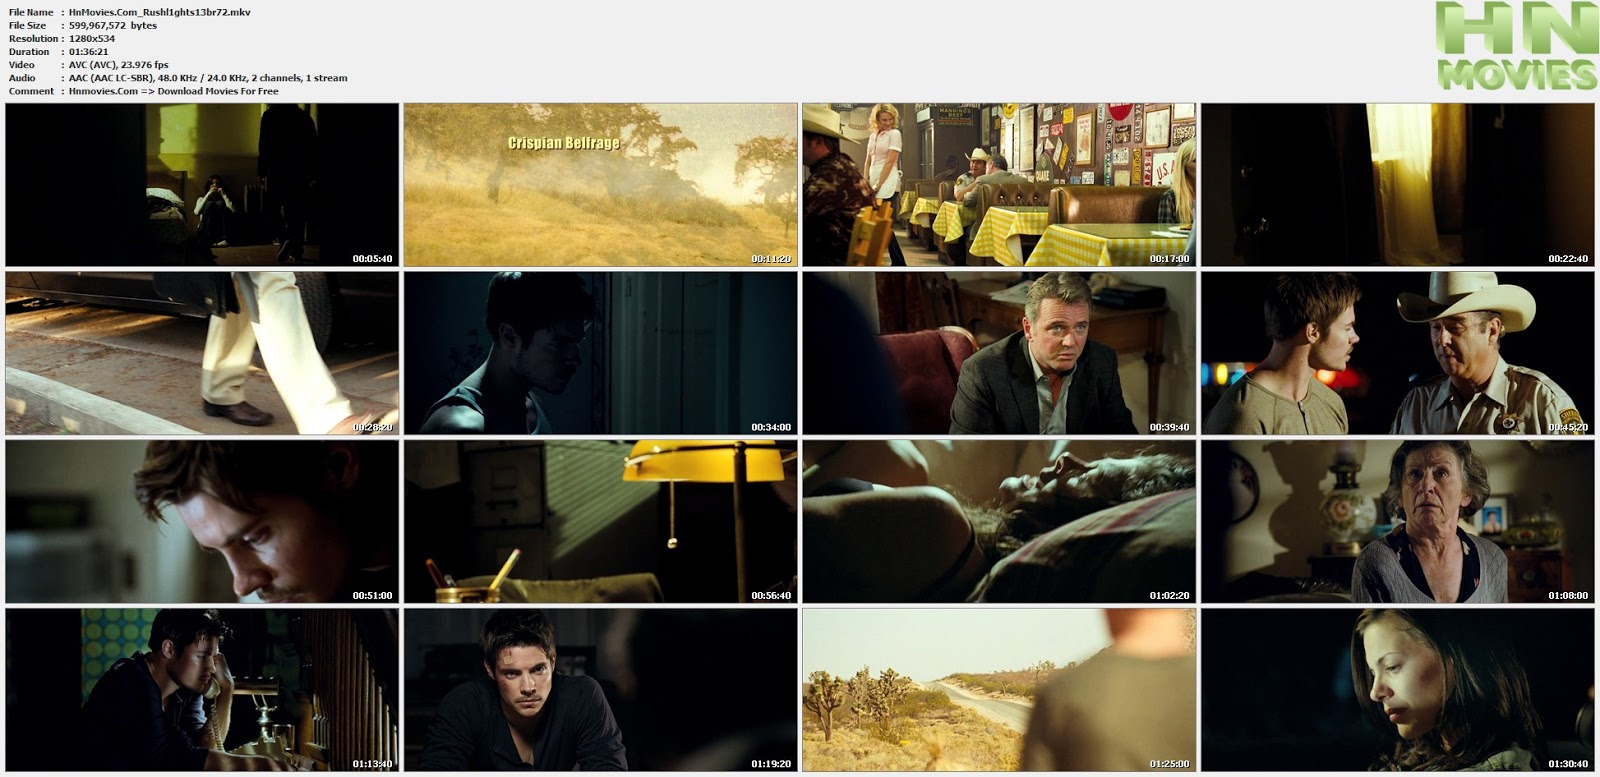 HnMovies.Com Rushl1ghts13br72.mkv